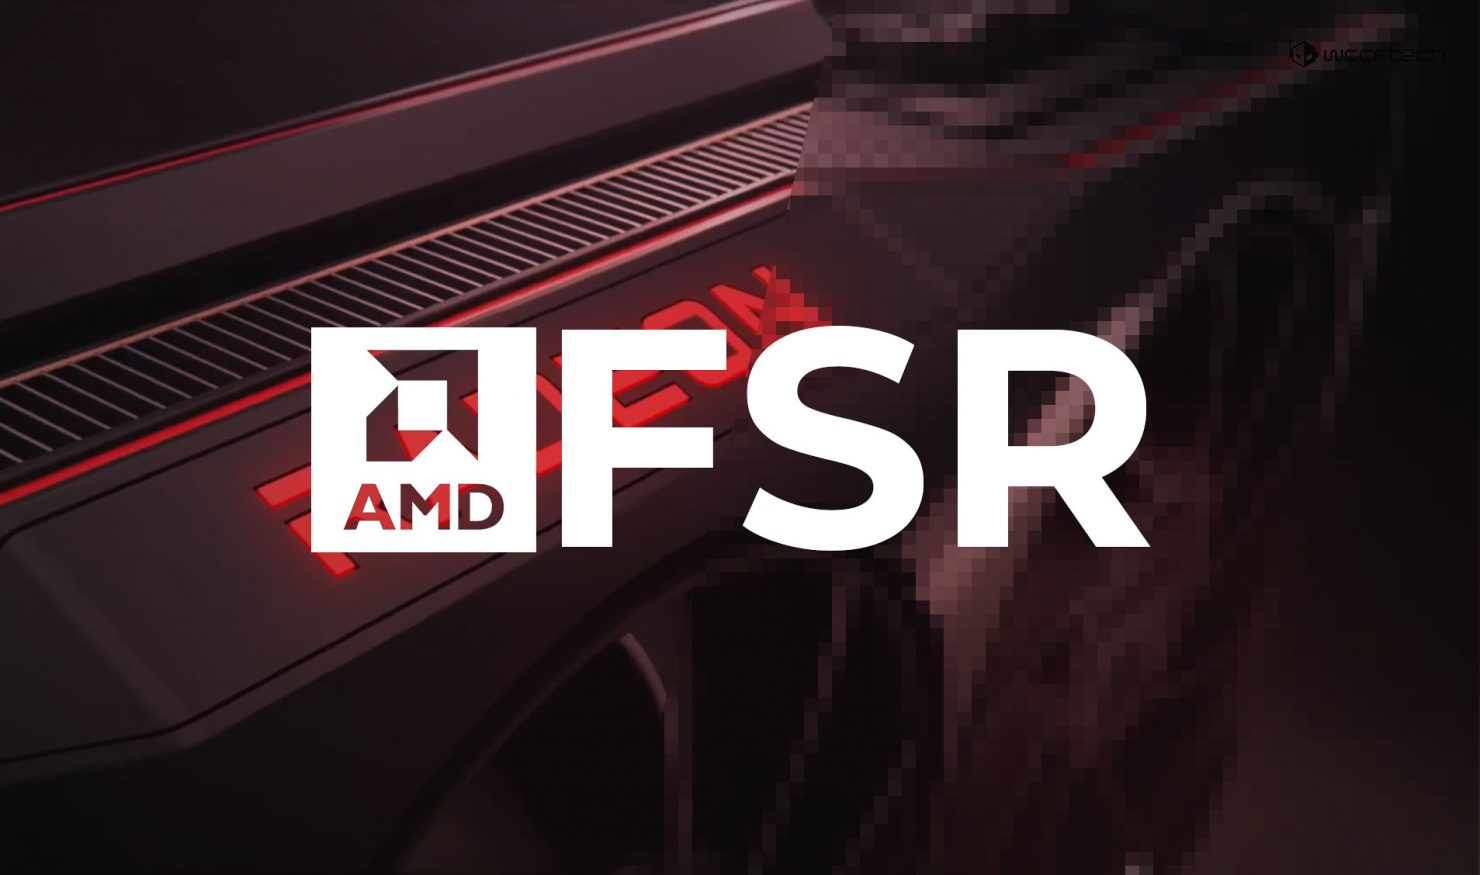 amd-fsr-(fidelityfx-super-resolution)-supported-games-list-leaks-–-here-are-the-20-titles-planned-so-far